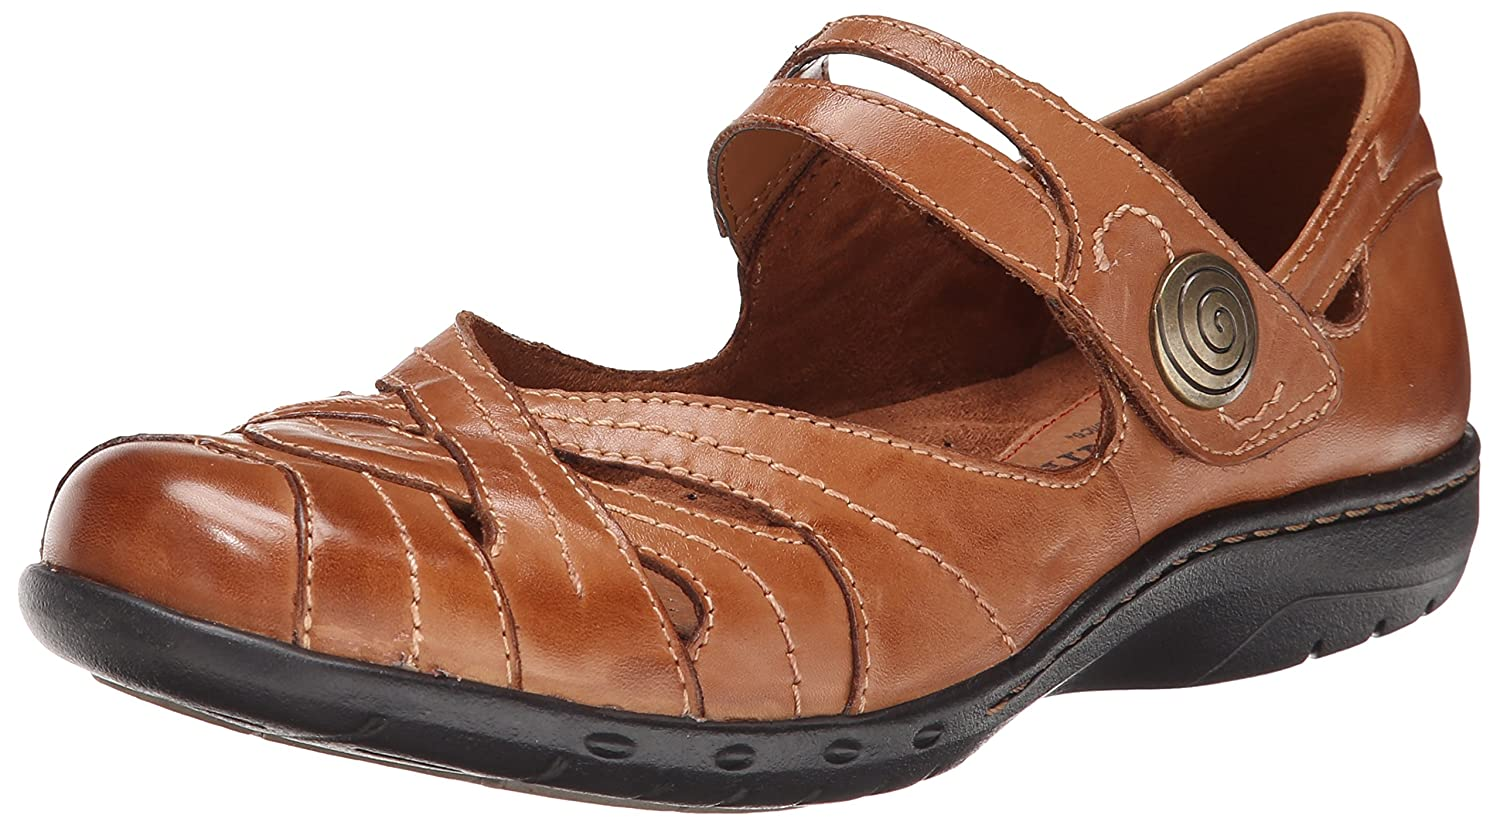 Cobb Hill Rockport Women's Parker CH Flat B00M1P21PO 6.5 B(M) US|Tan